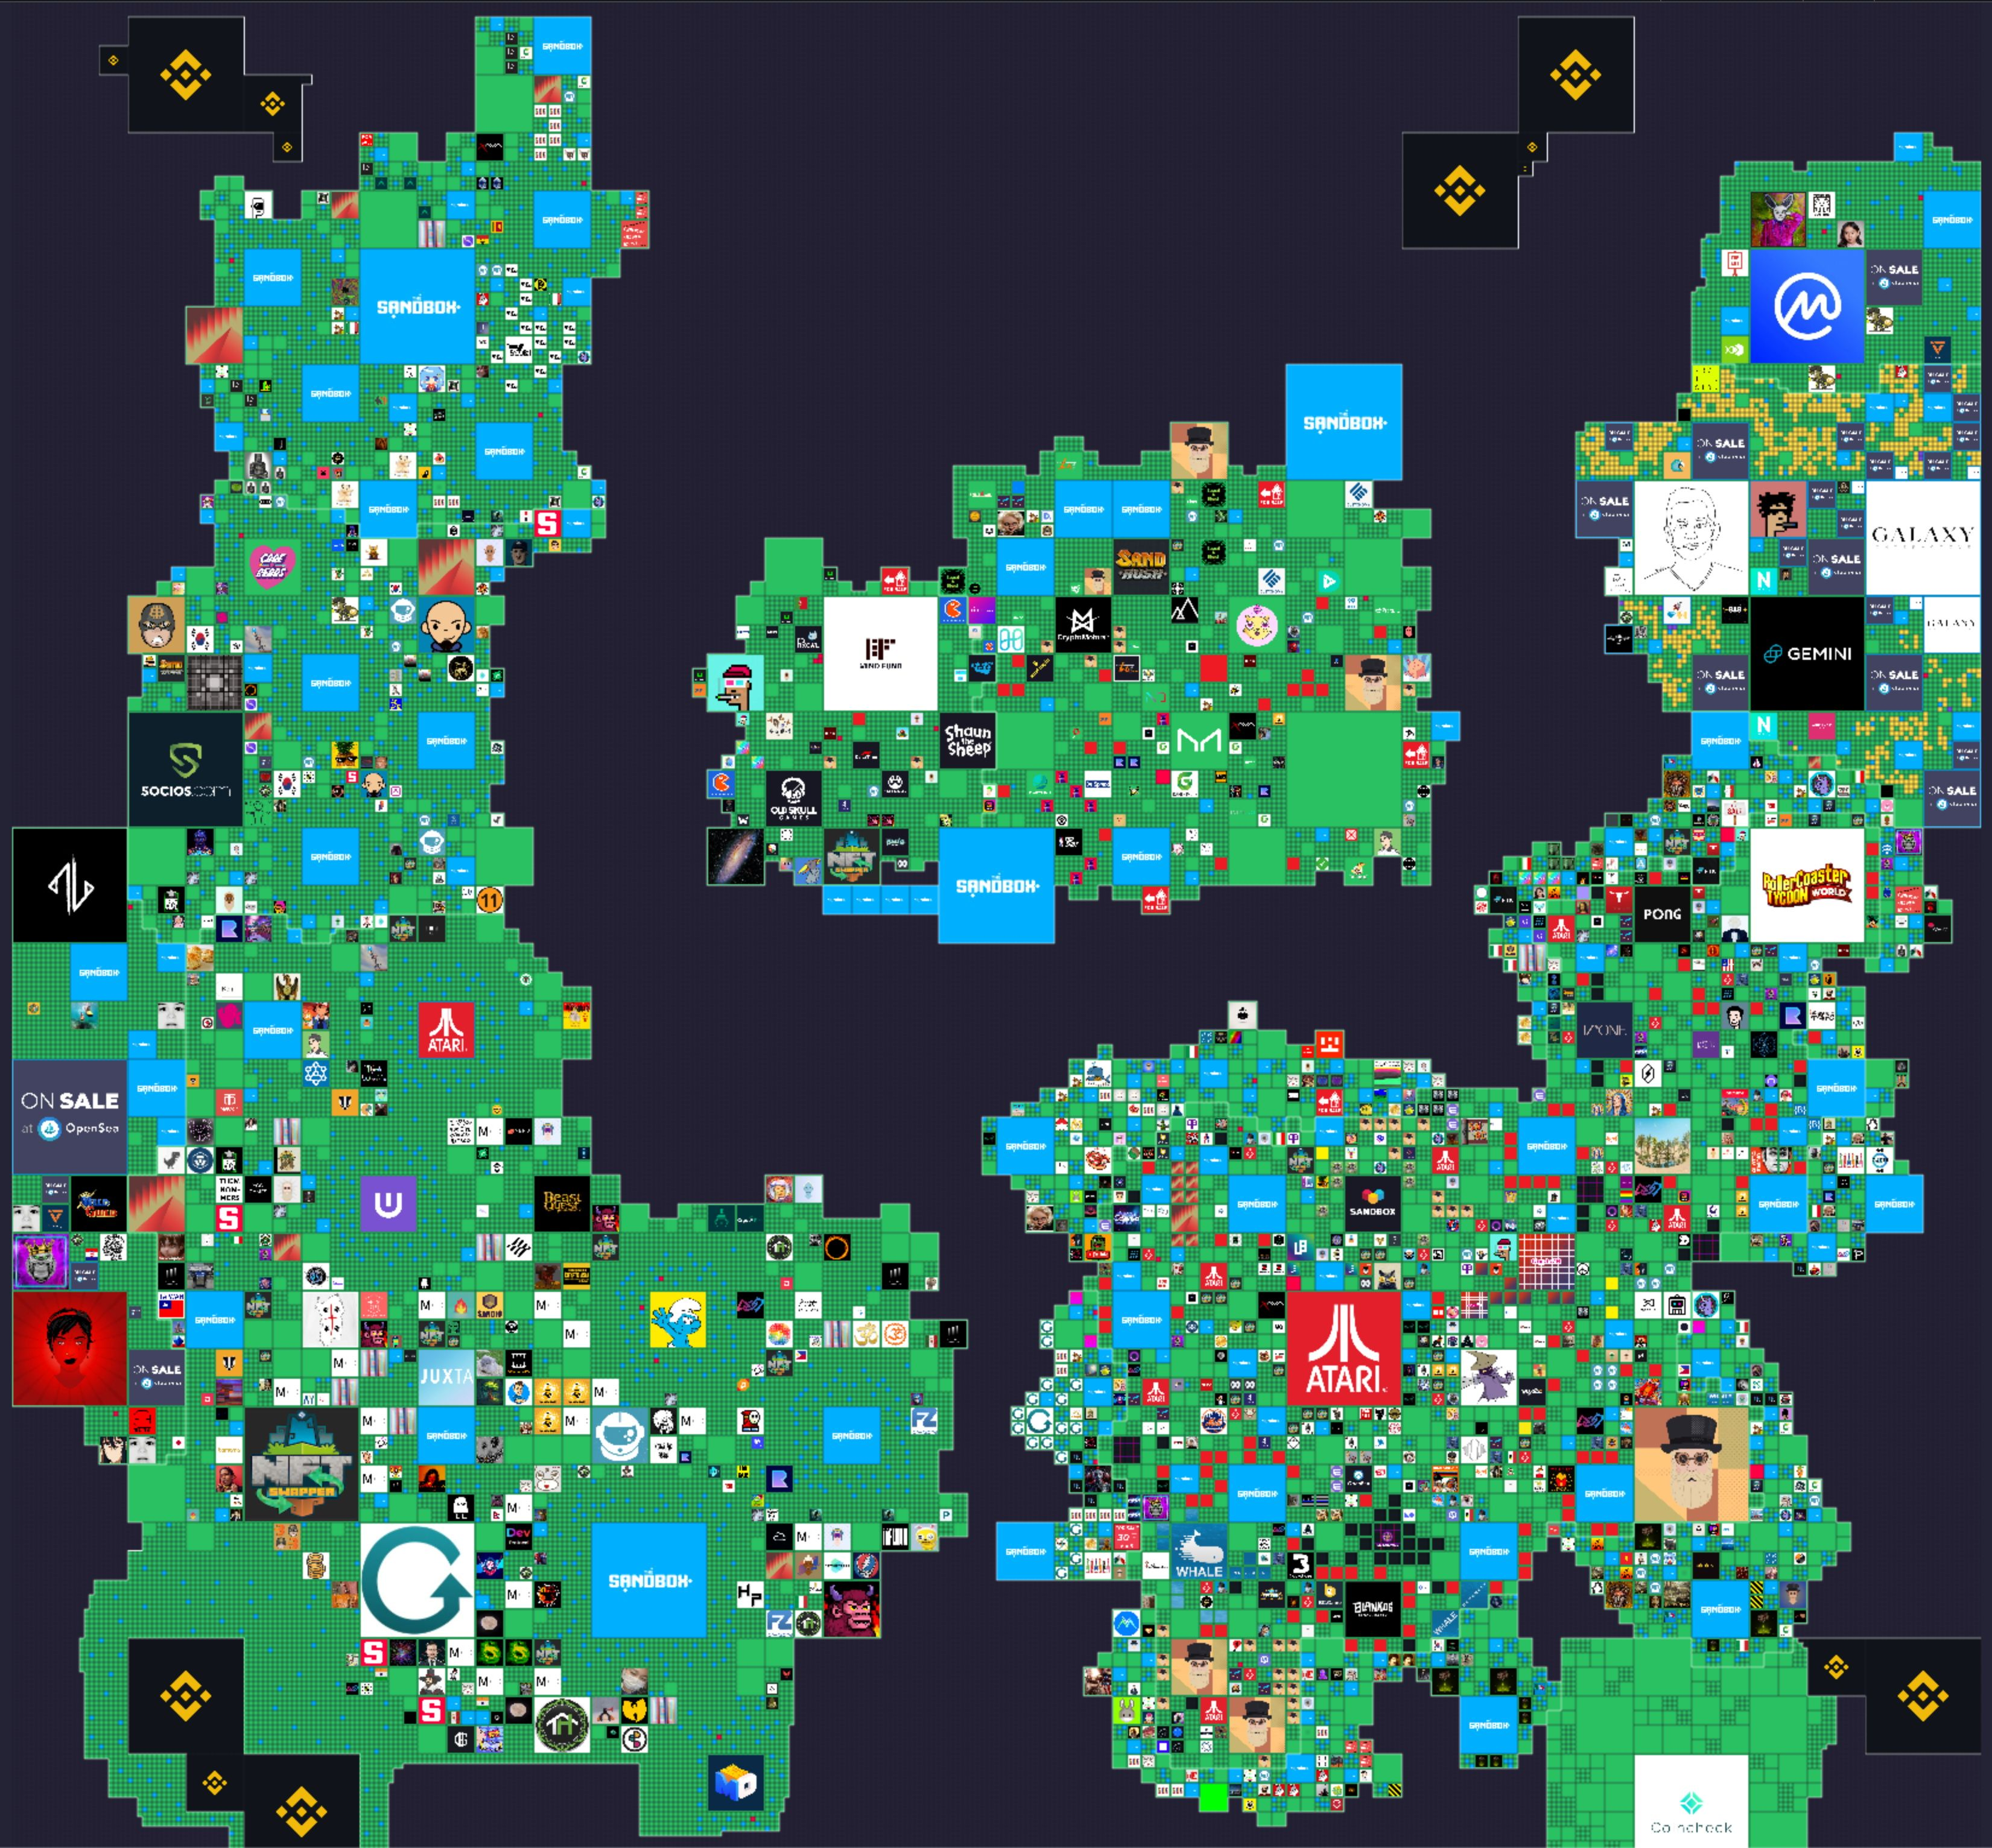 The map of the lands within The Sandbox gaming virtual world is seen in this handout image provided on April 16, 2021. The Sandbox/Handout via REUTERS   THIS IMAGE HAS BEEN SUPPLIED BY A THIRD PARTY. NO RESALES. NO ARCHIVES. MANDATORY CREDIT